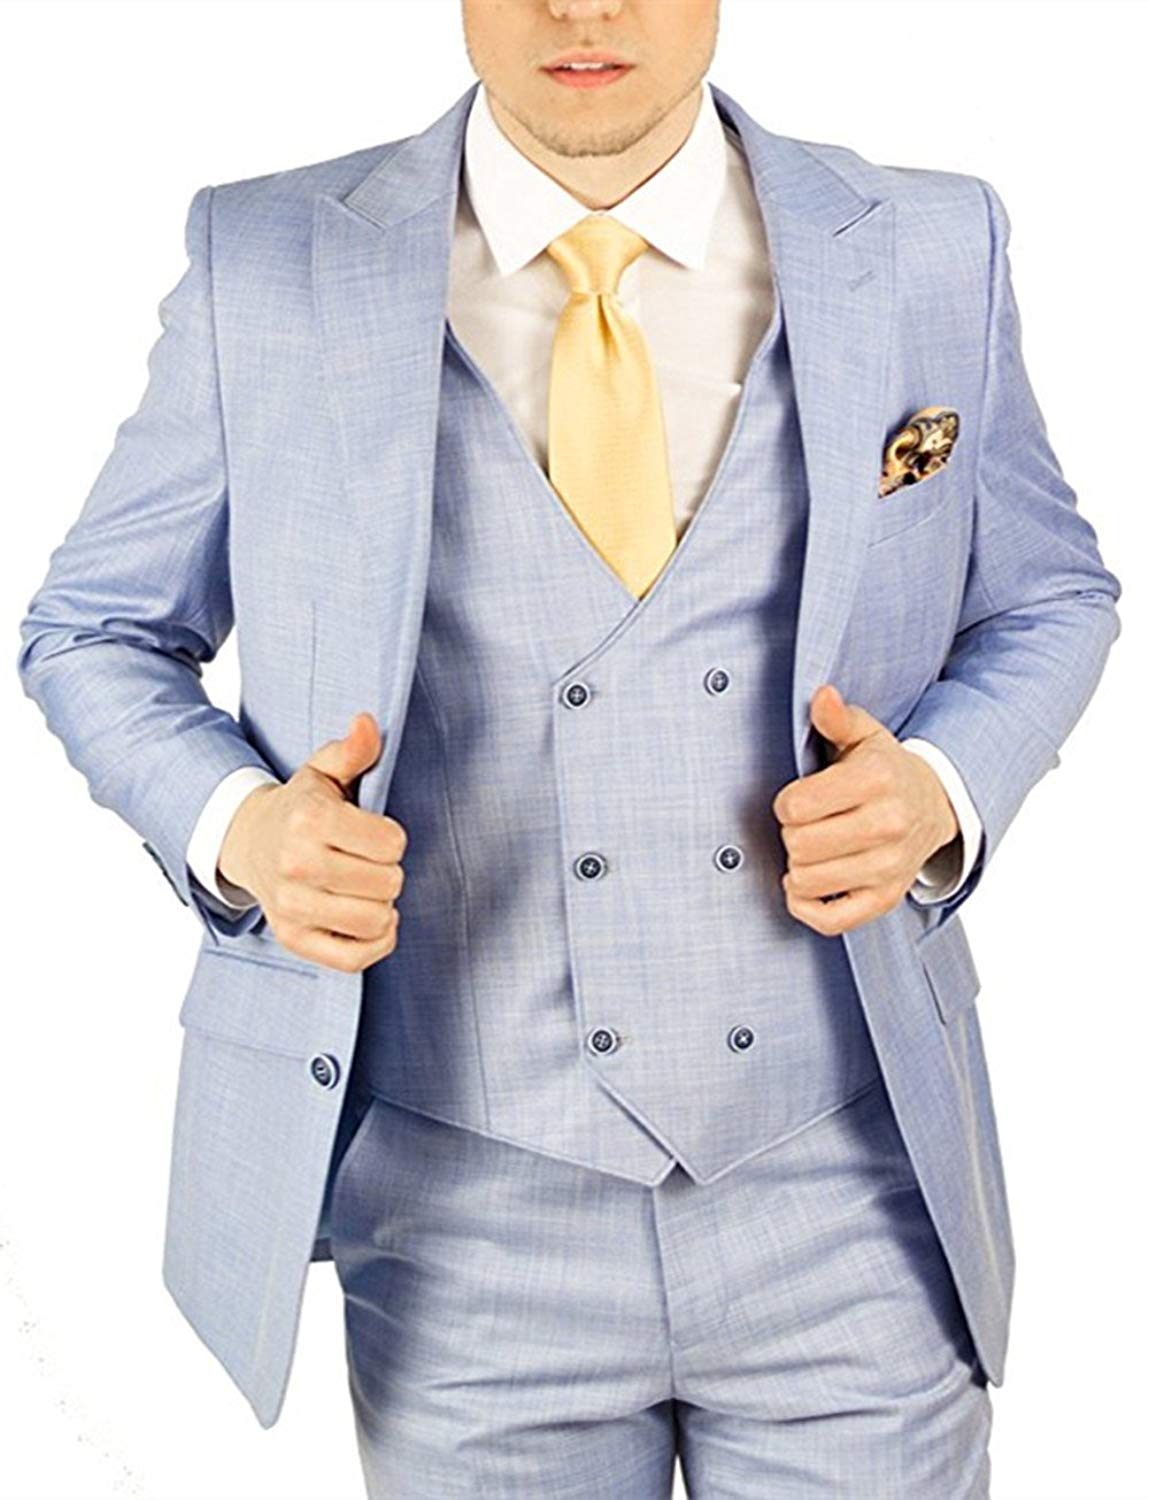 Suxiaoxi Mens Formal 3 Pieces Tuxedo Business Suits Handsome Groom Suits